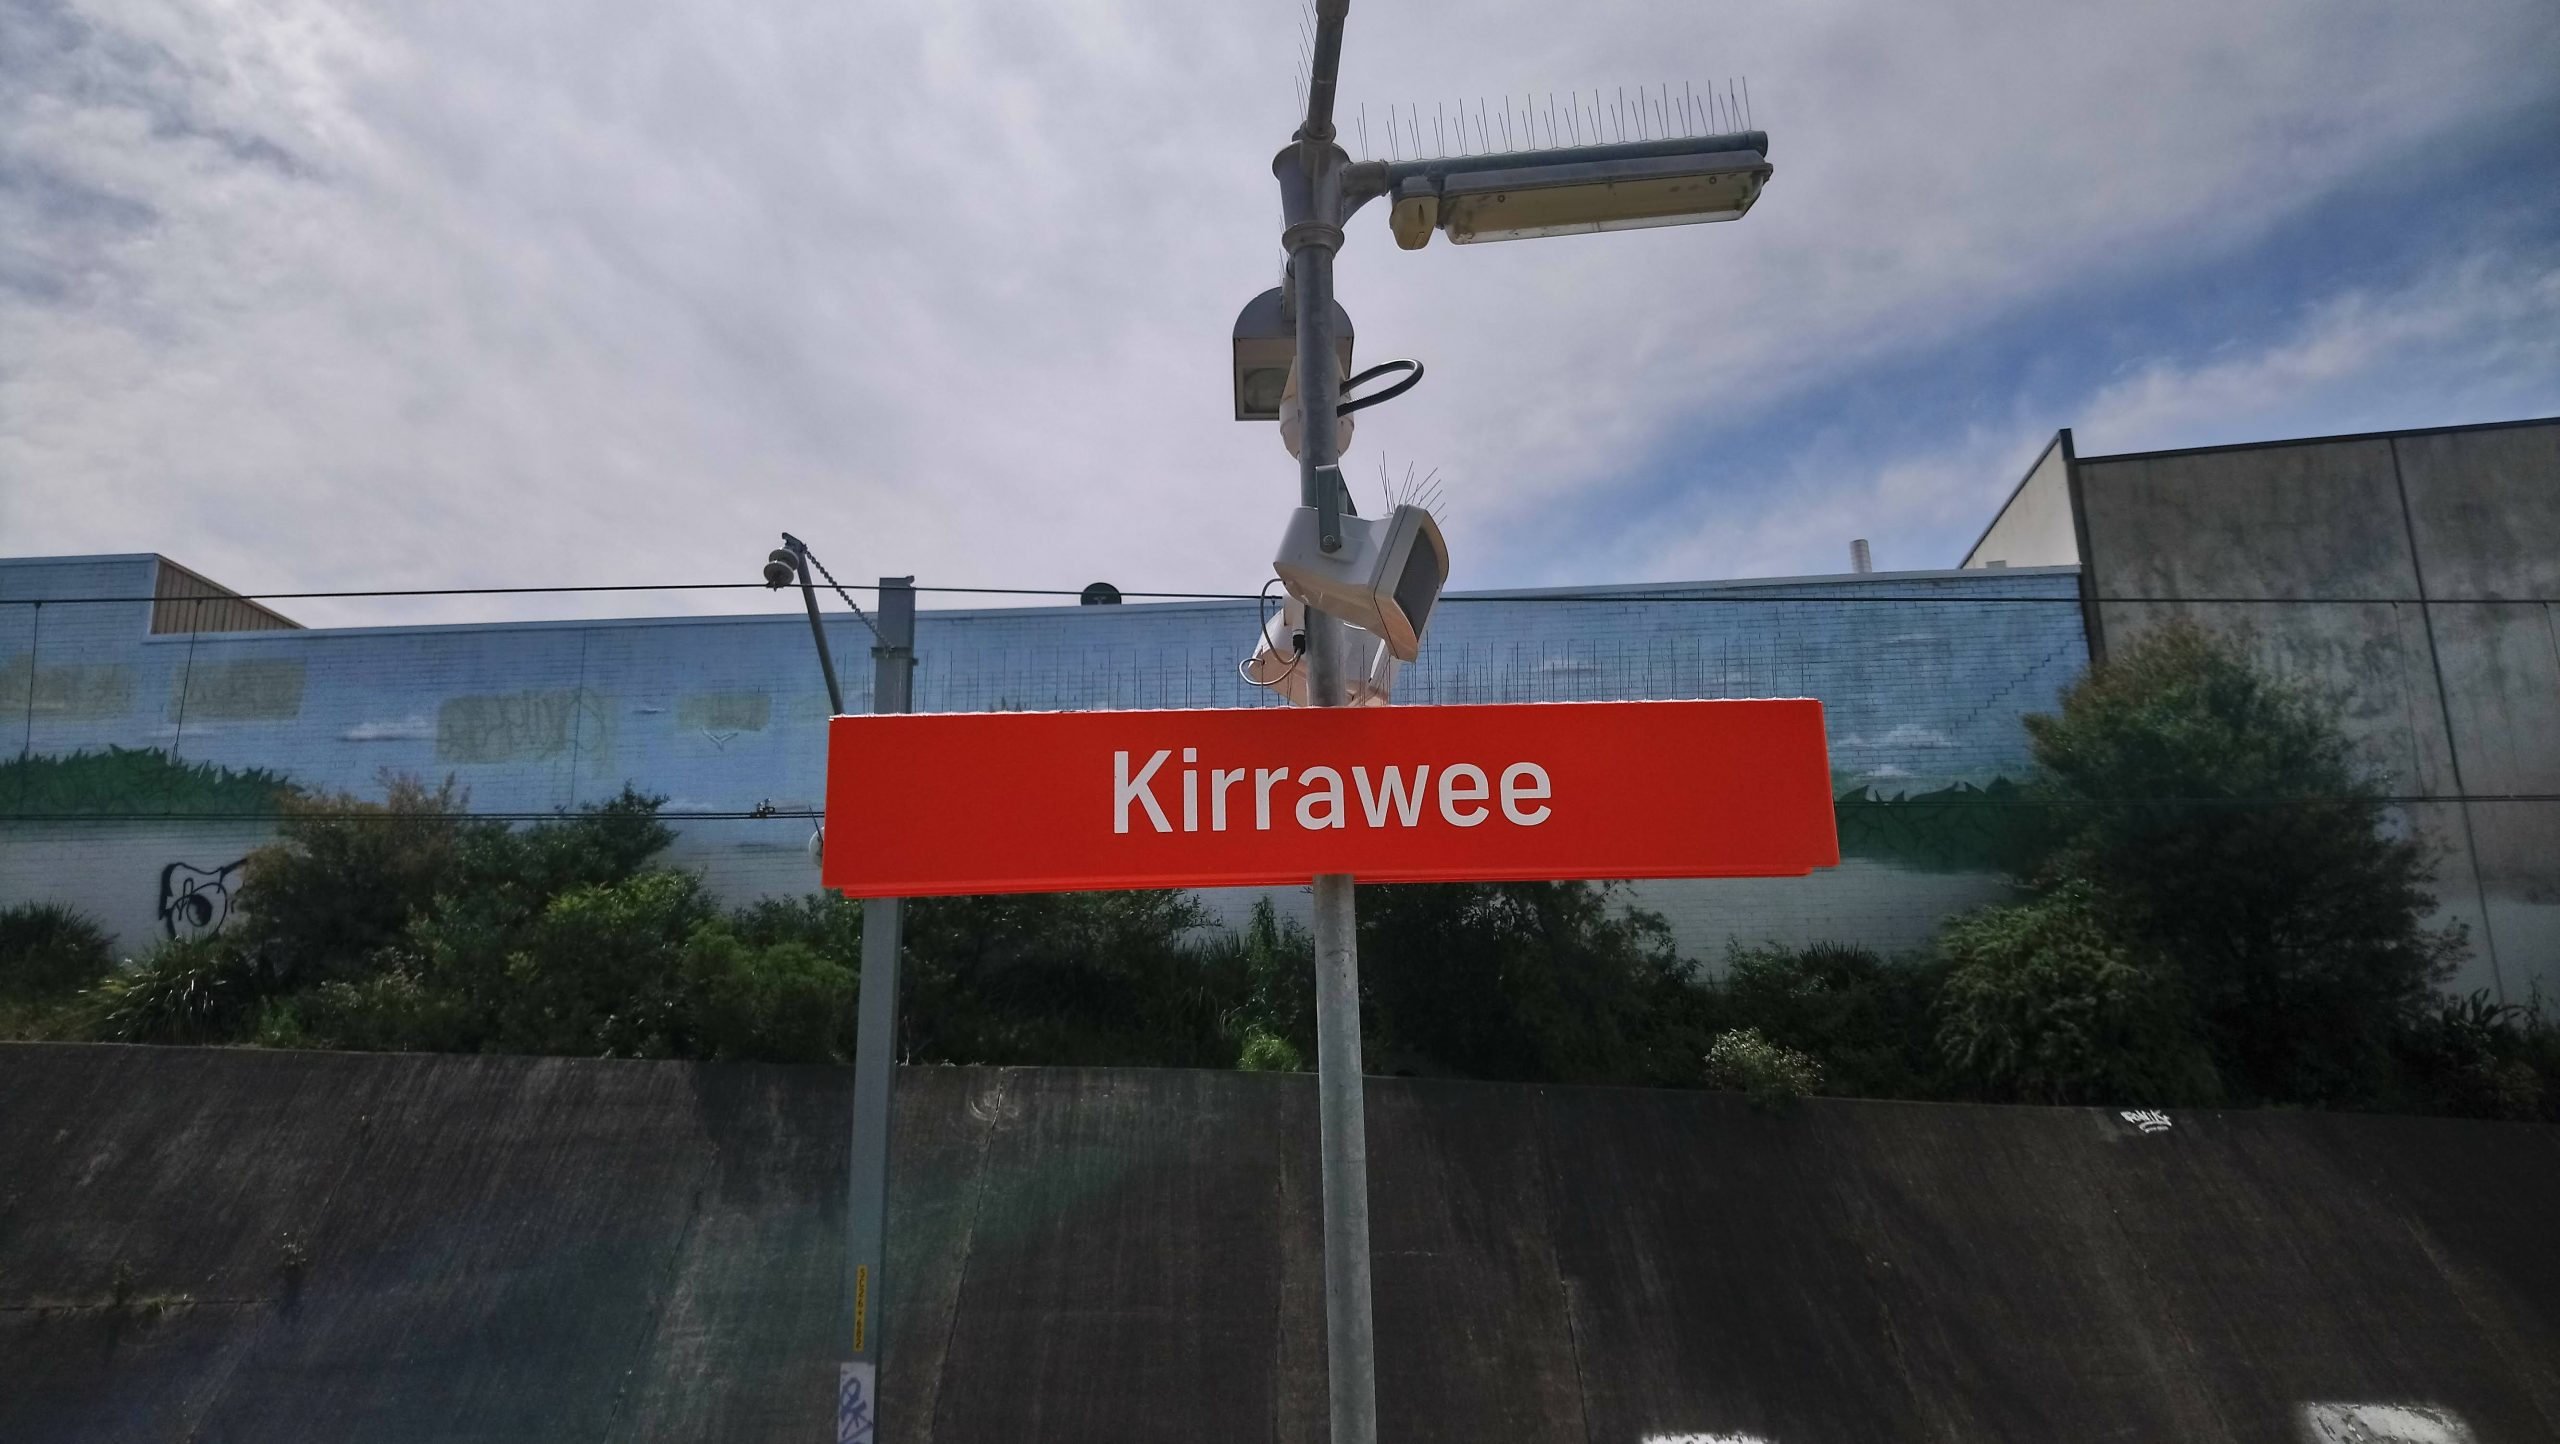 An orange sign set in the middle of the photo marking the location of Kirrawee station. Background contains the back of factories with no windows.